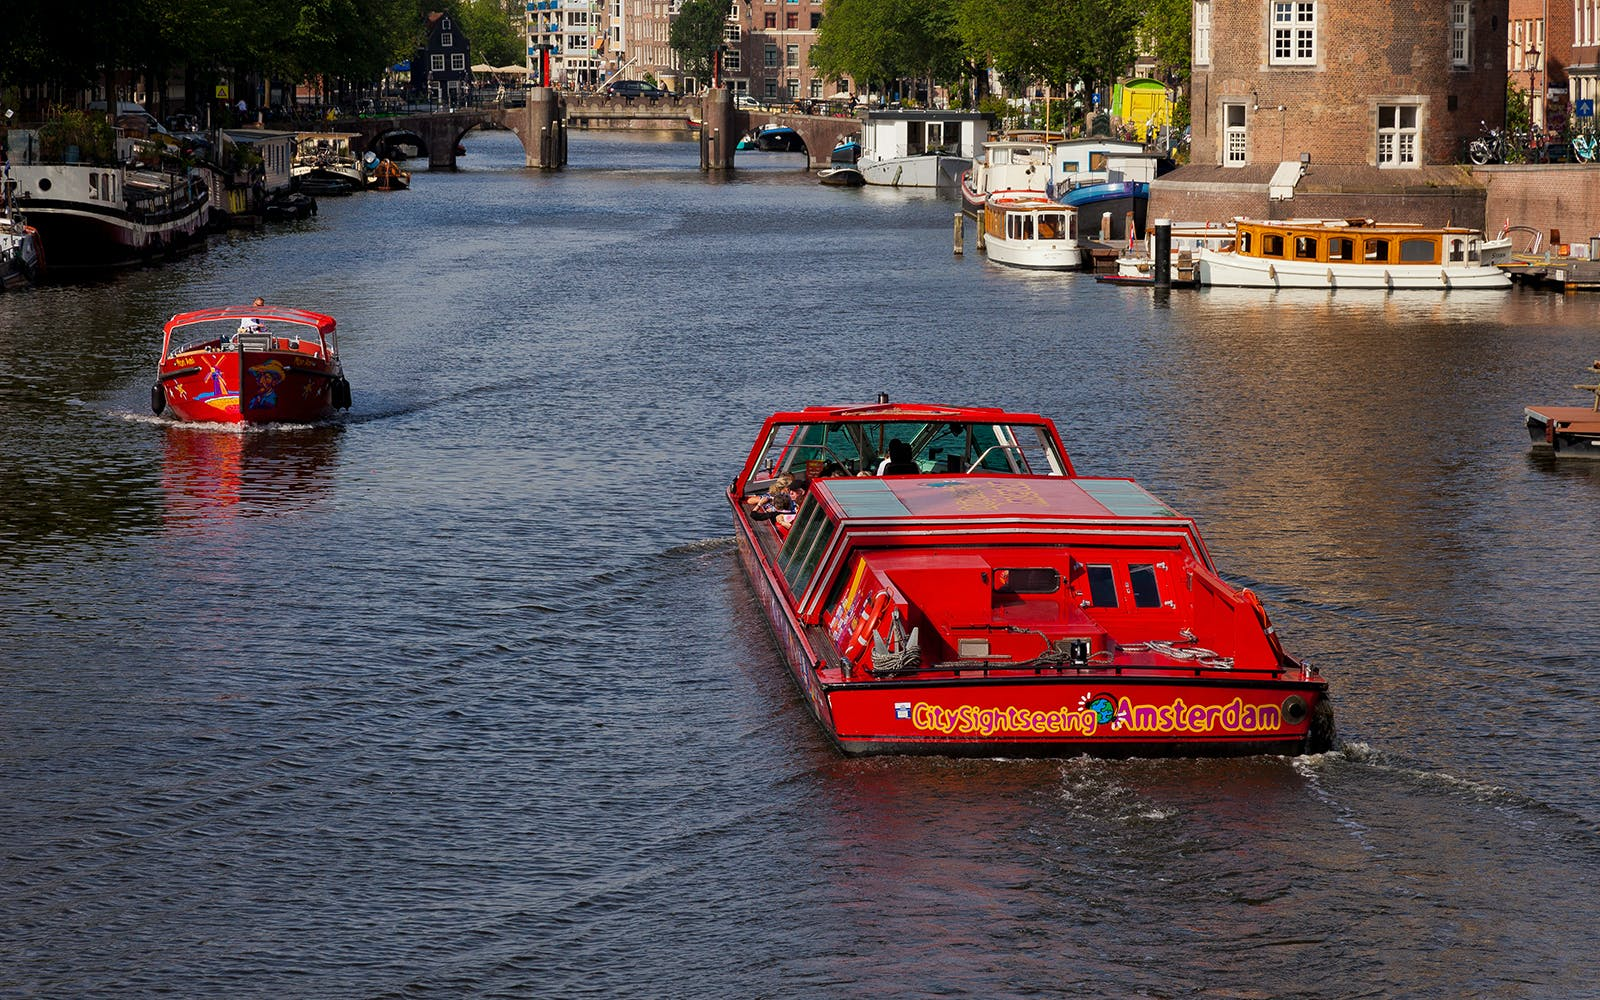 amsterdam hop on hop off boat tour-4